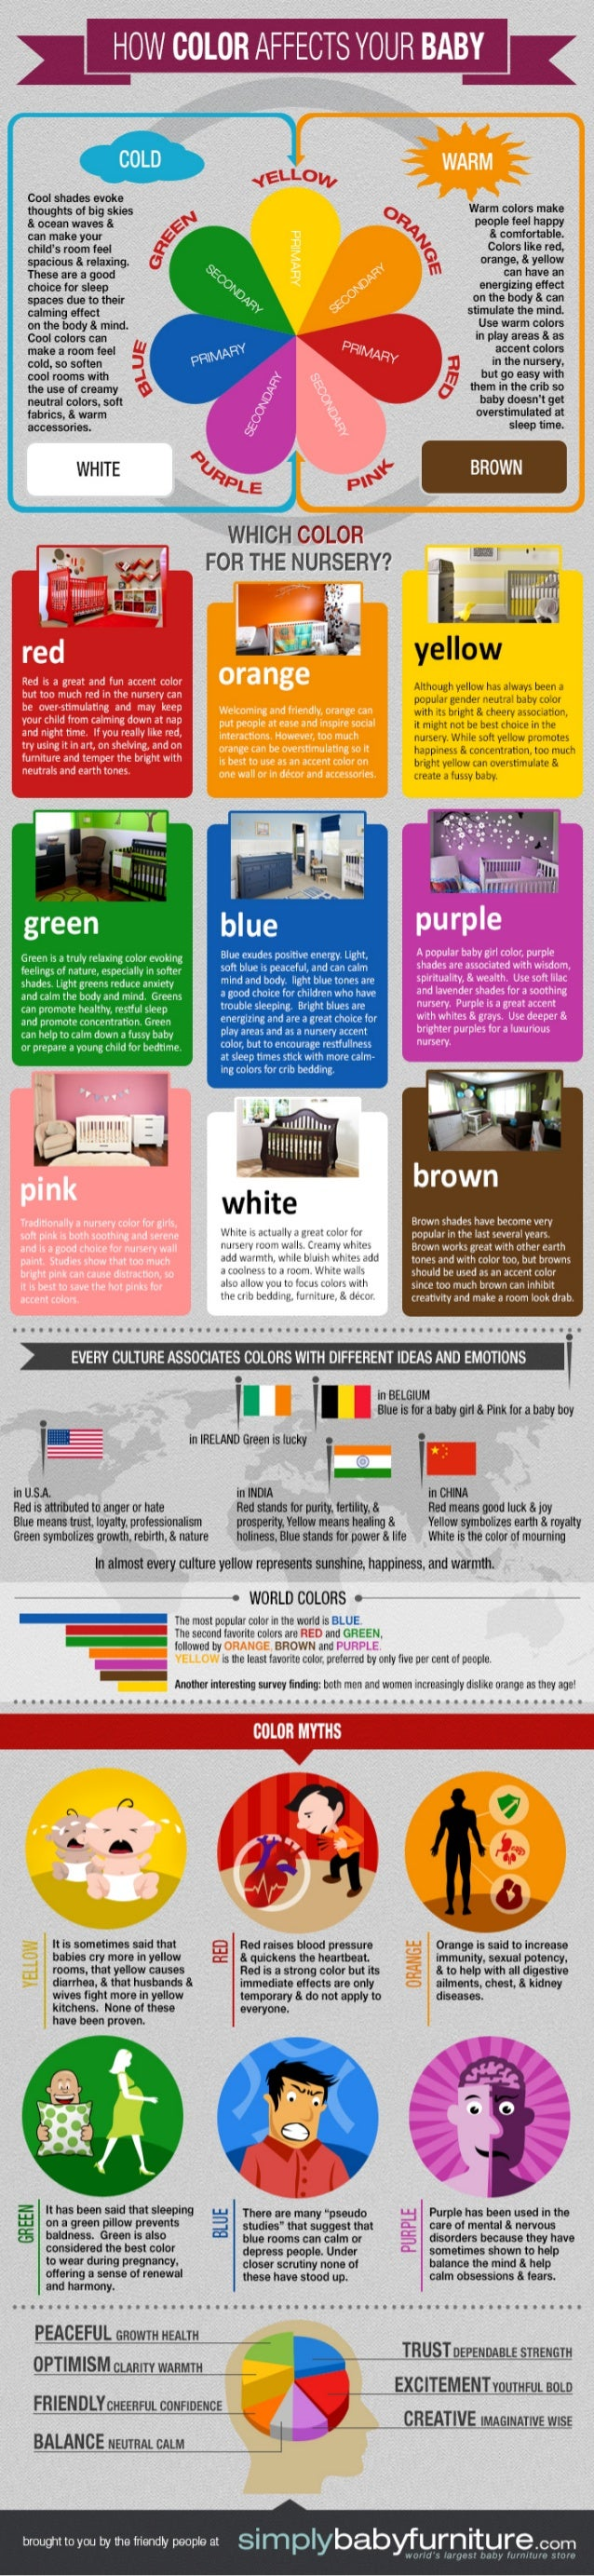 Nursery Color Guide: How Color Affects Your Baby's Mood